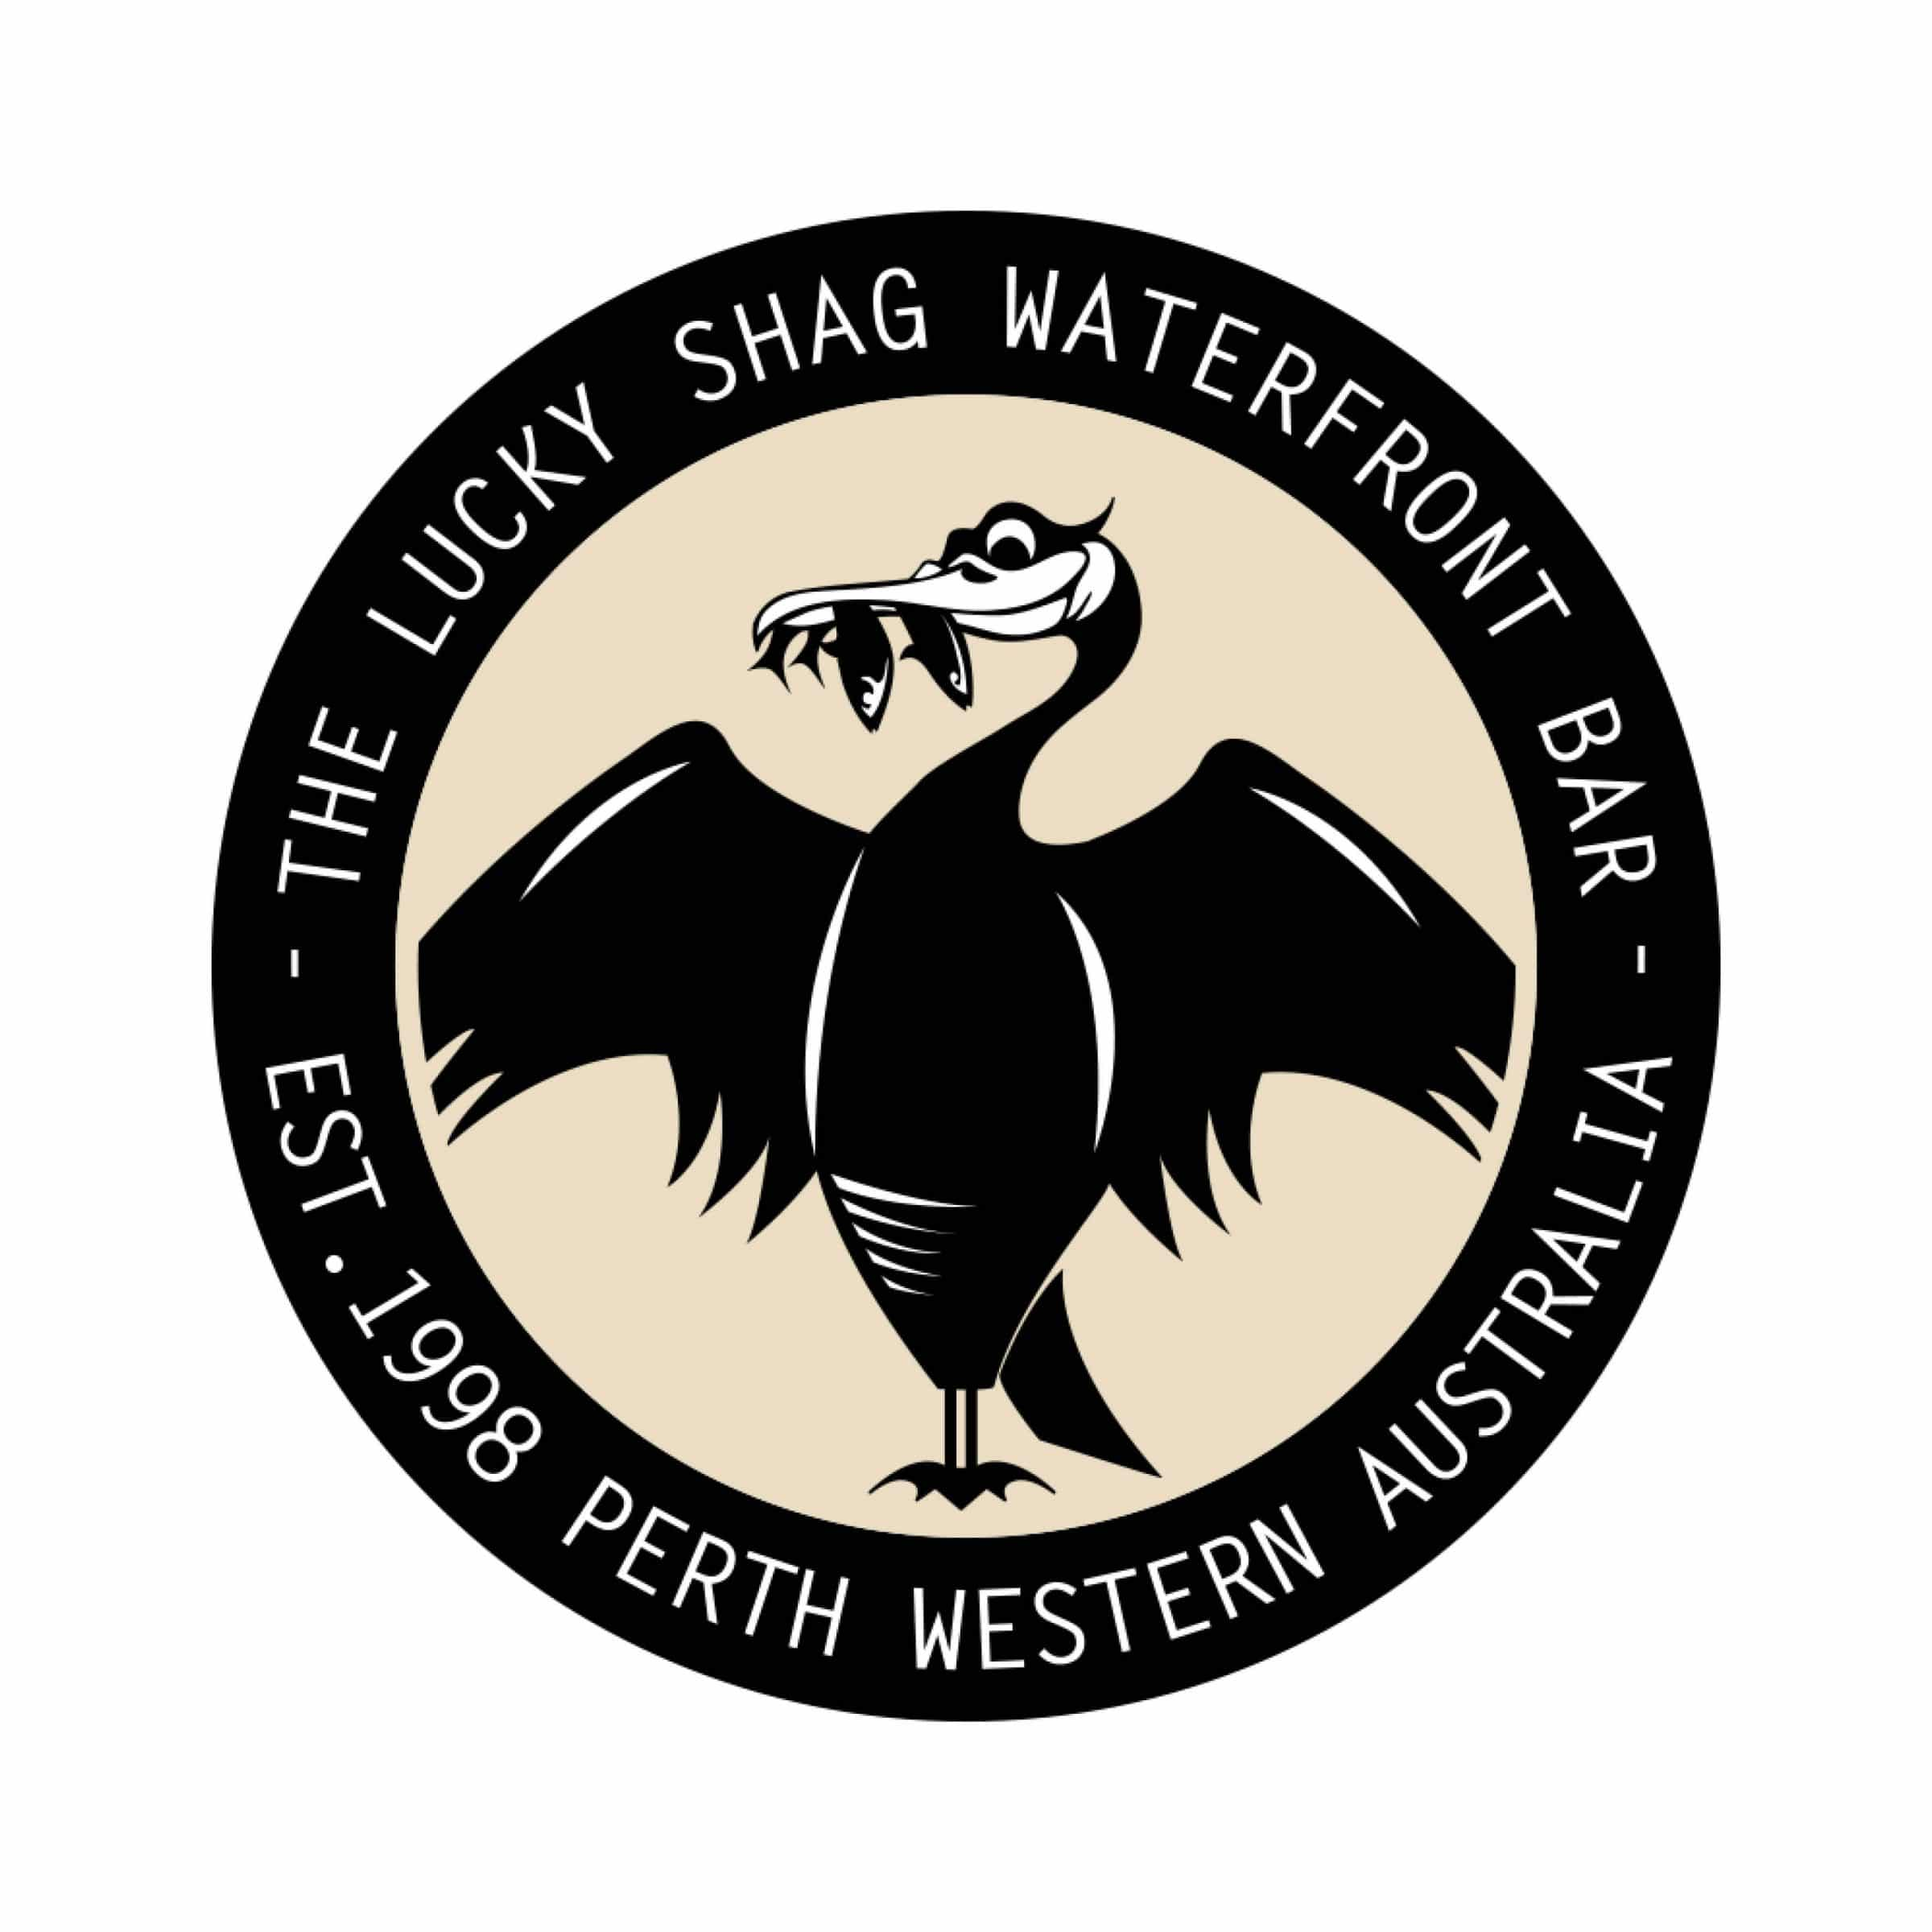 swan river sailing supporter lucky shag logo perth